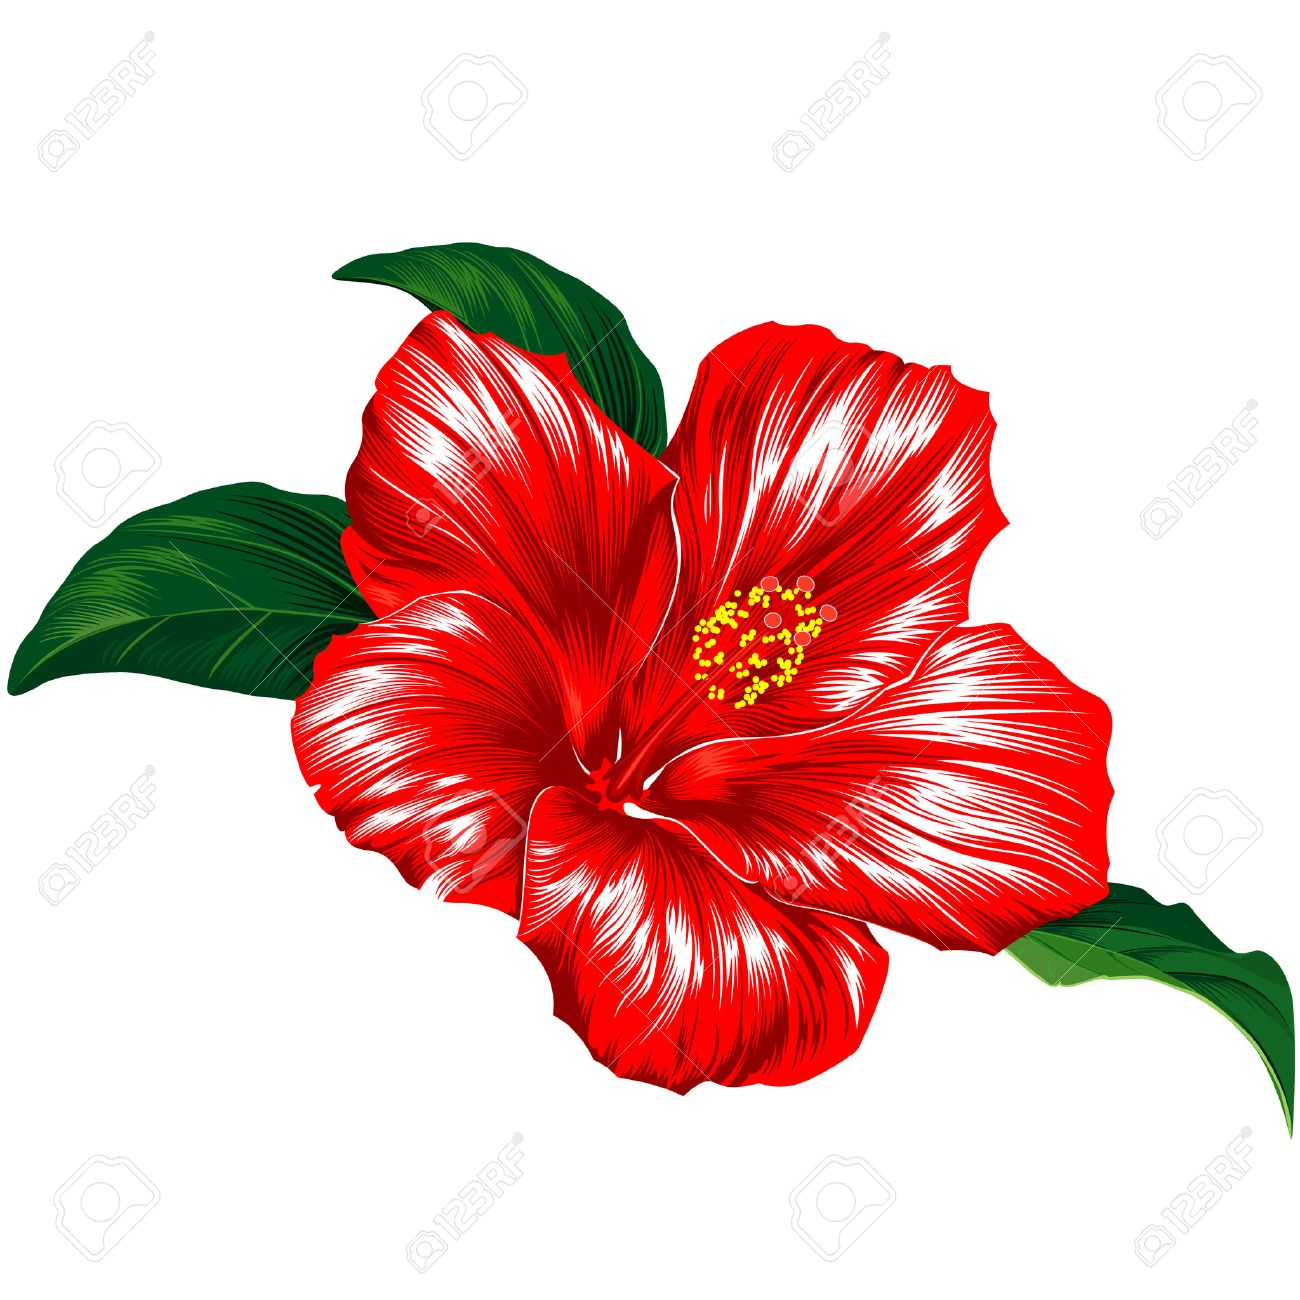 Red Hibiscus Flower Blossom With Leaves - 6608089